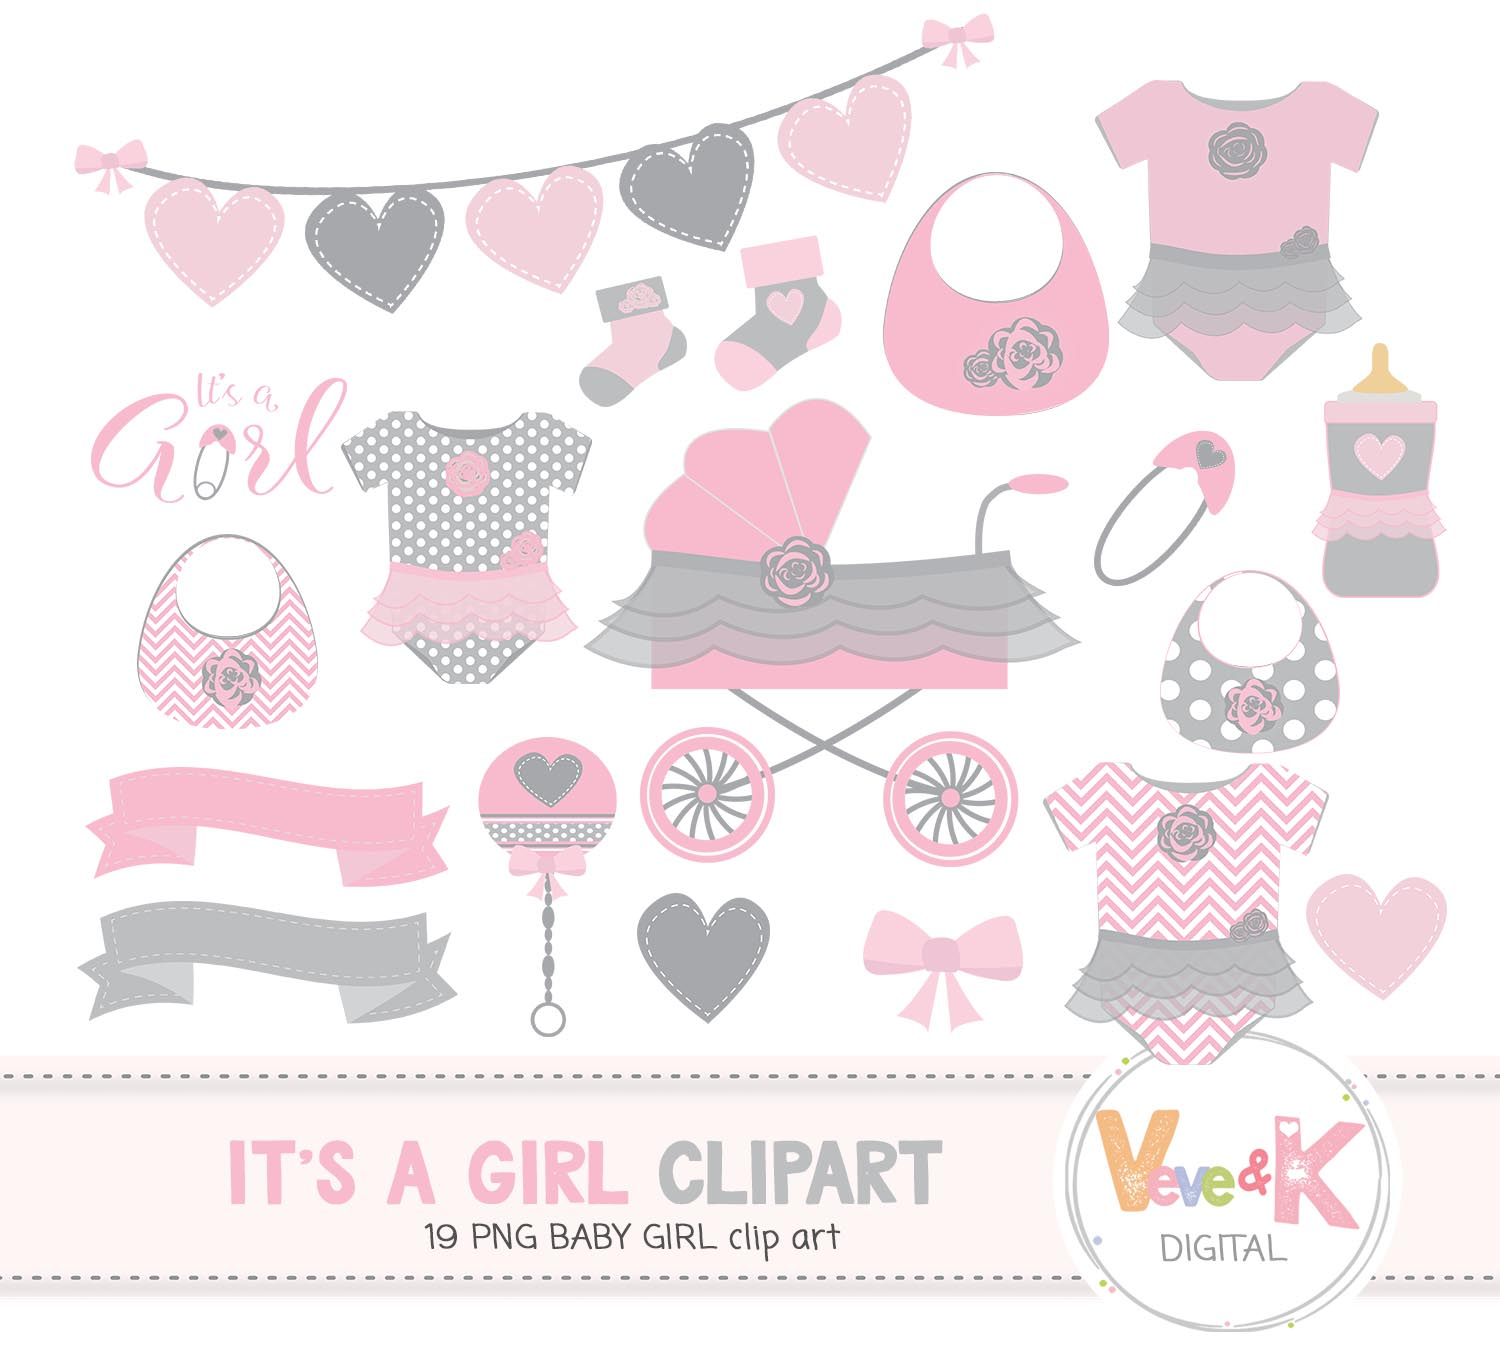 Baby Shower Clip Art, Baby Girl Clipart, Baby Girl Baby Shower DIY, Its a  Girl, Pink and Gray Baby Shower, Baby Shower.